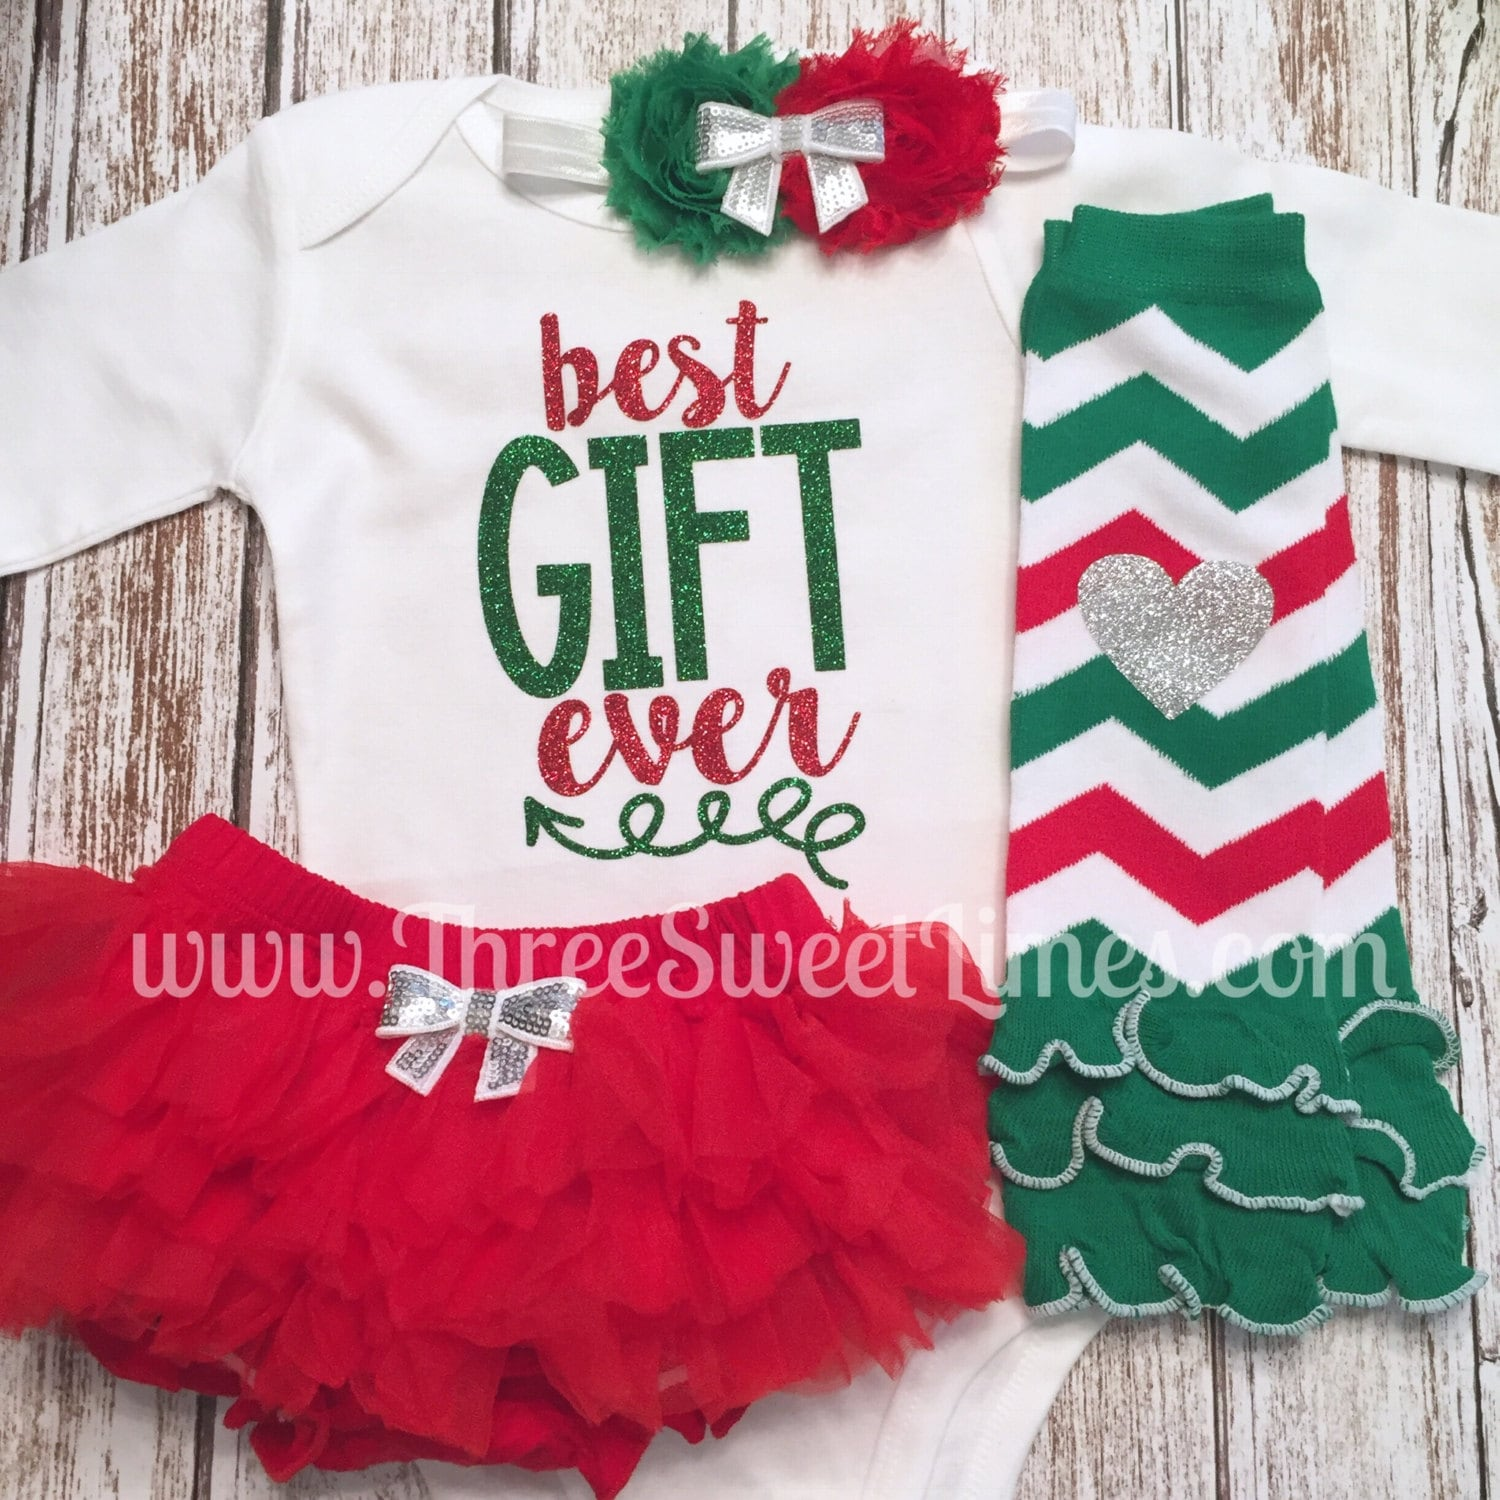 Christmas gown ideas 18th - Baby Girl Christmas Outfit Best Gift Ever Outfit Baby S First Christmas Opt Leg